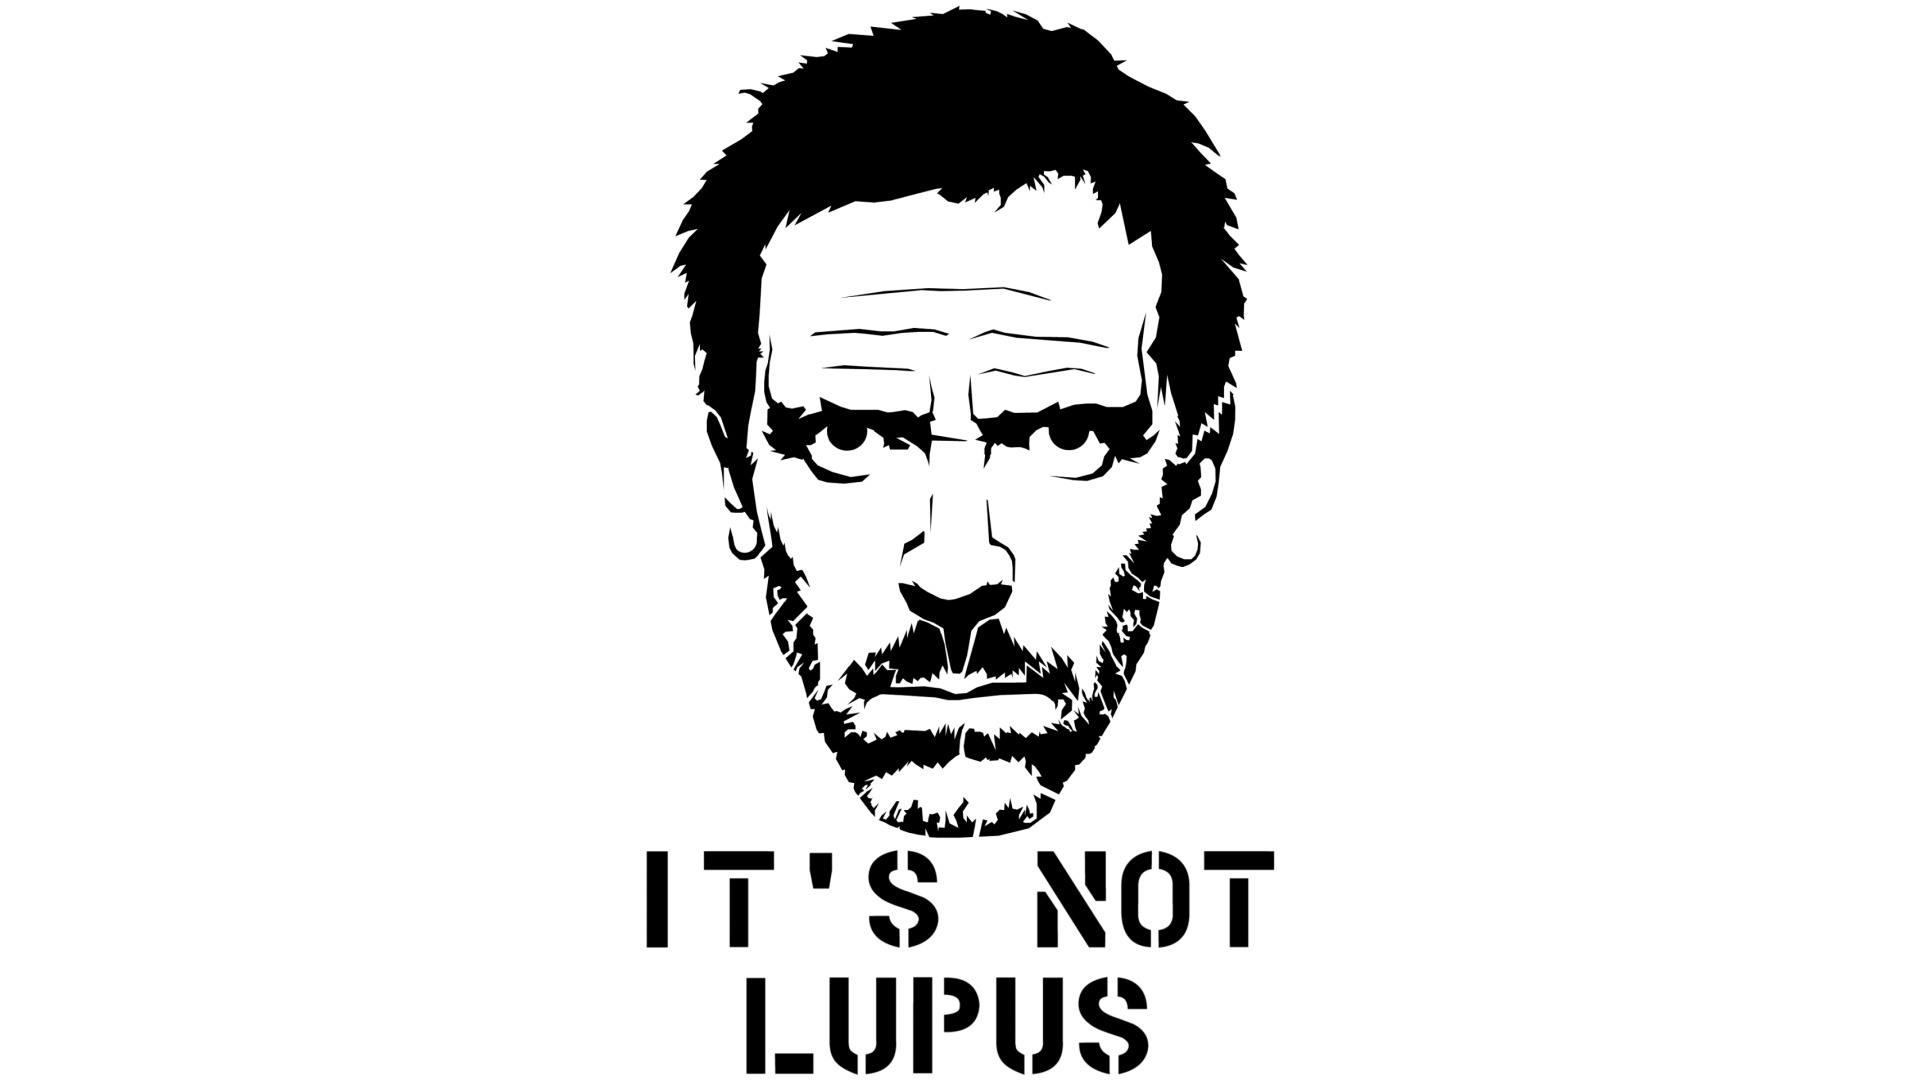 TV lupus Hugh laurie HD Wallpaper